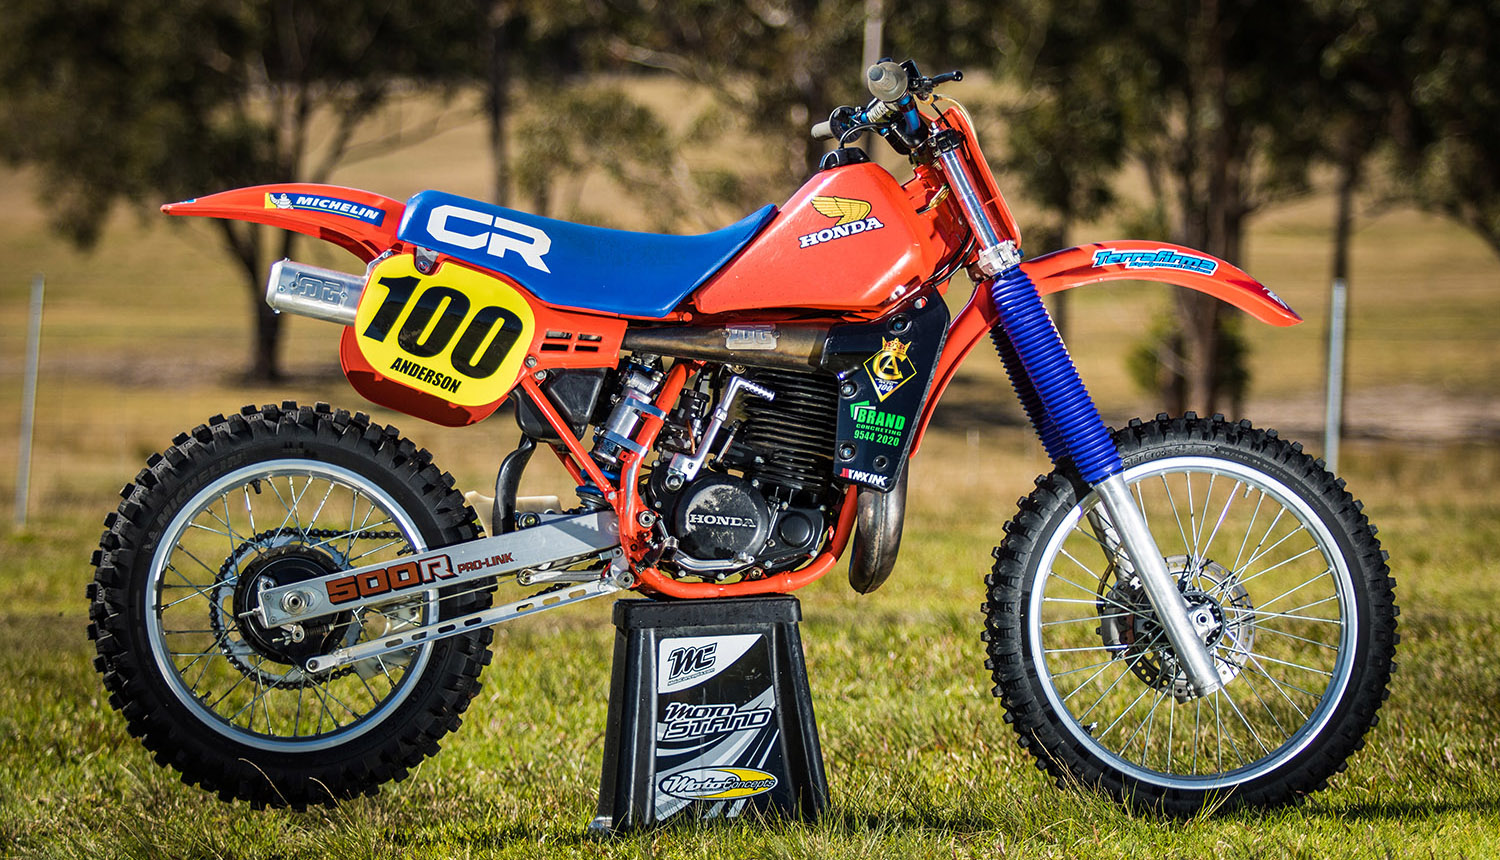 CR500 MAIN PIC - P34 featured